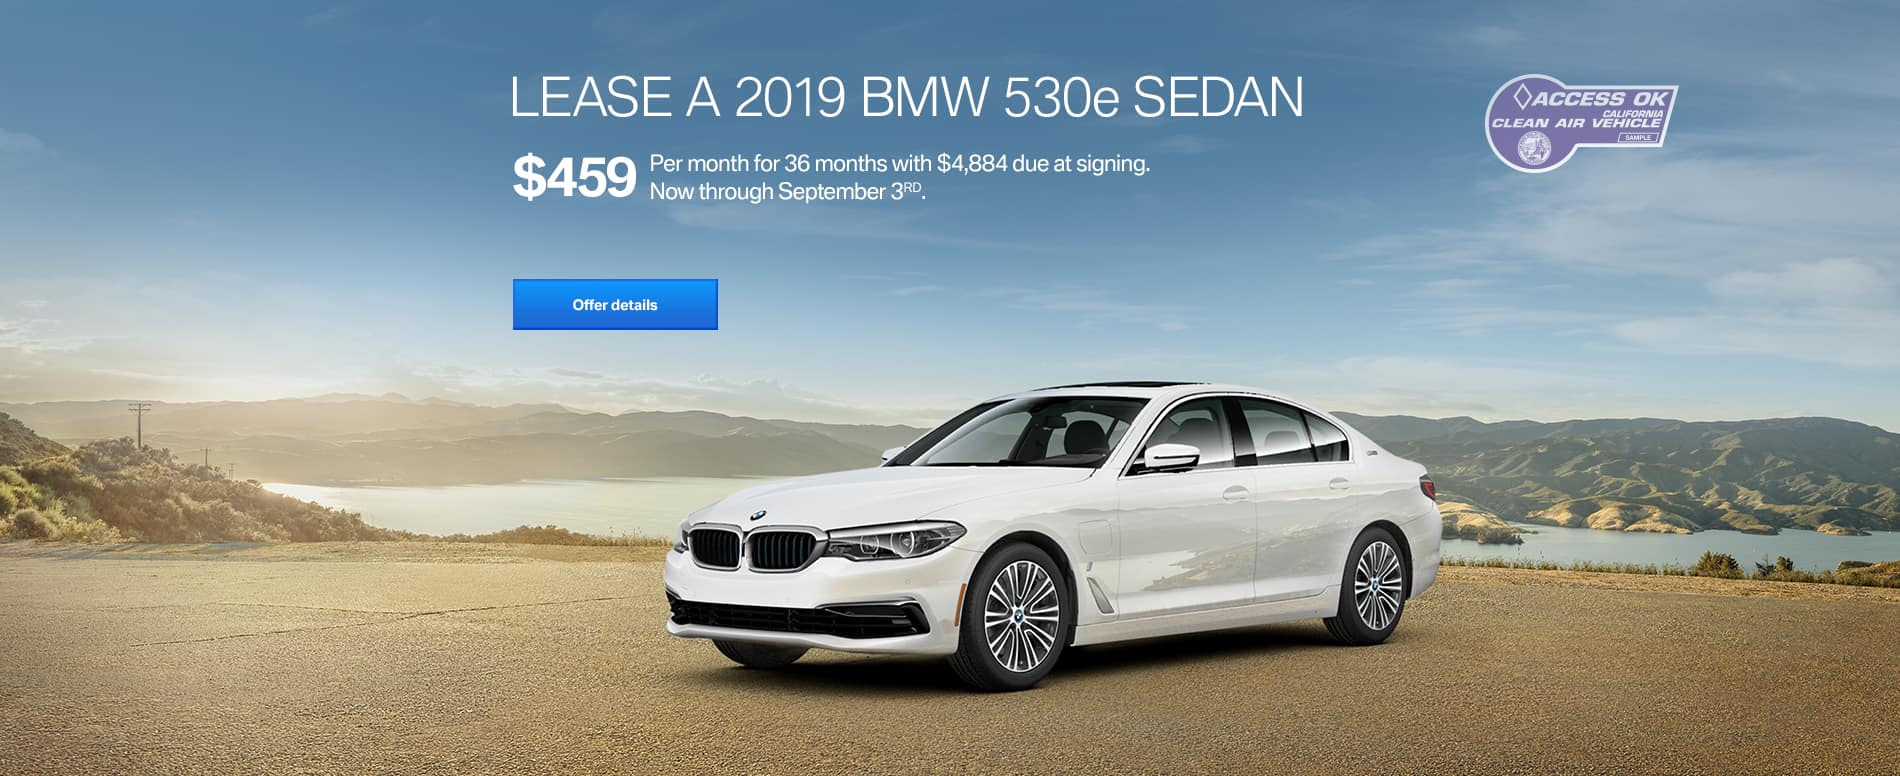 bmw 530e $459 per month lease offer east bay bmw